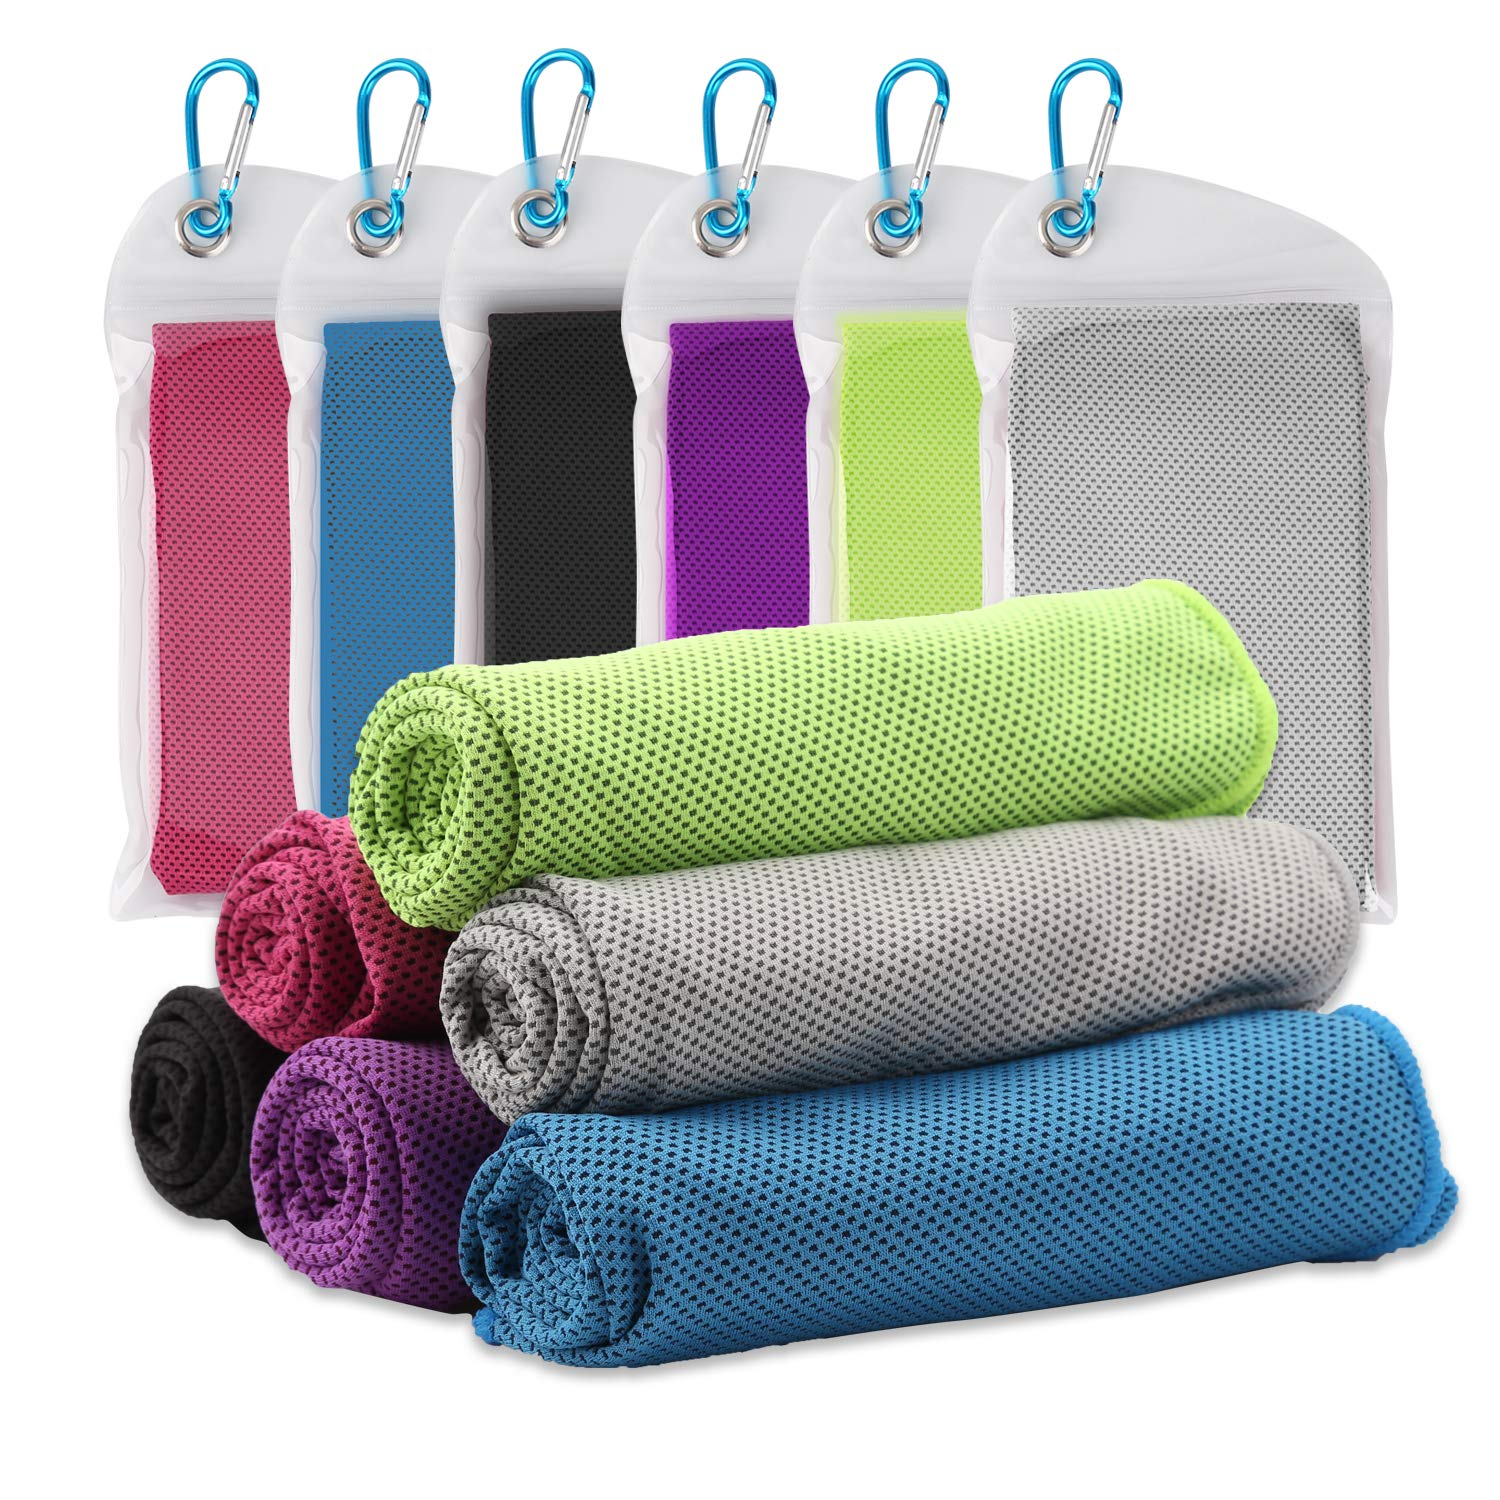 "Vetoo 6 Packs Cooling Towel (40""x 12"") for Instant Relief, Ice Towel, Microfiber Towel for Sports, Gym, Yoga, Travel, Camping & More"